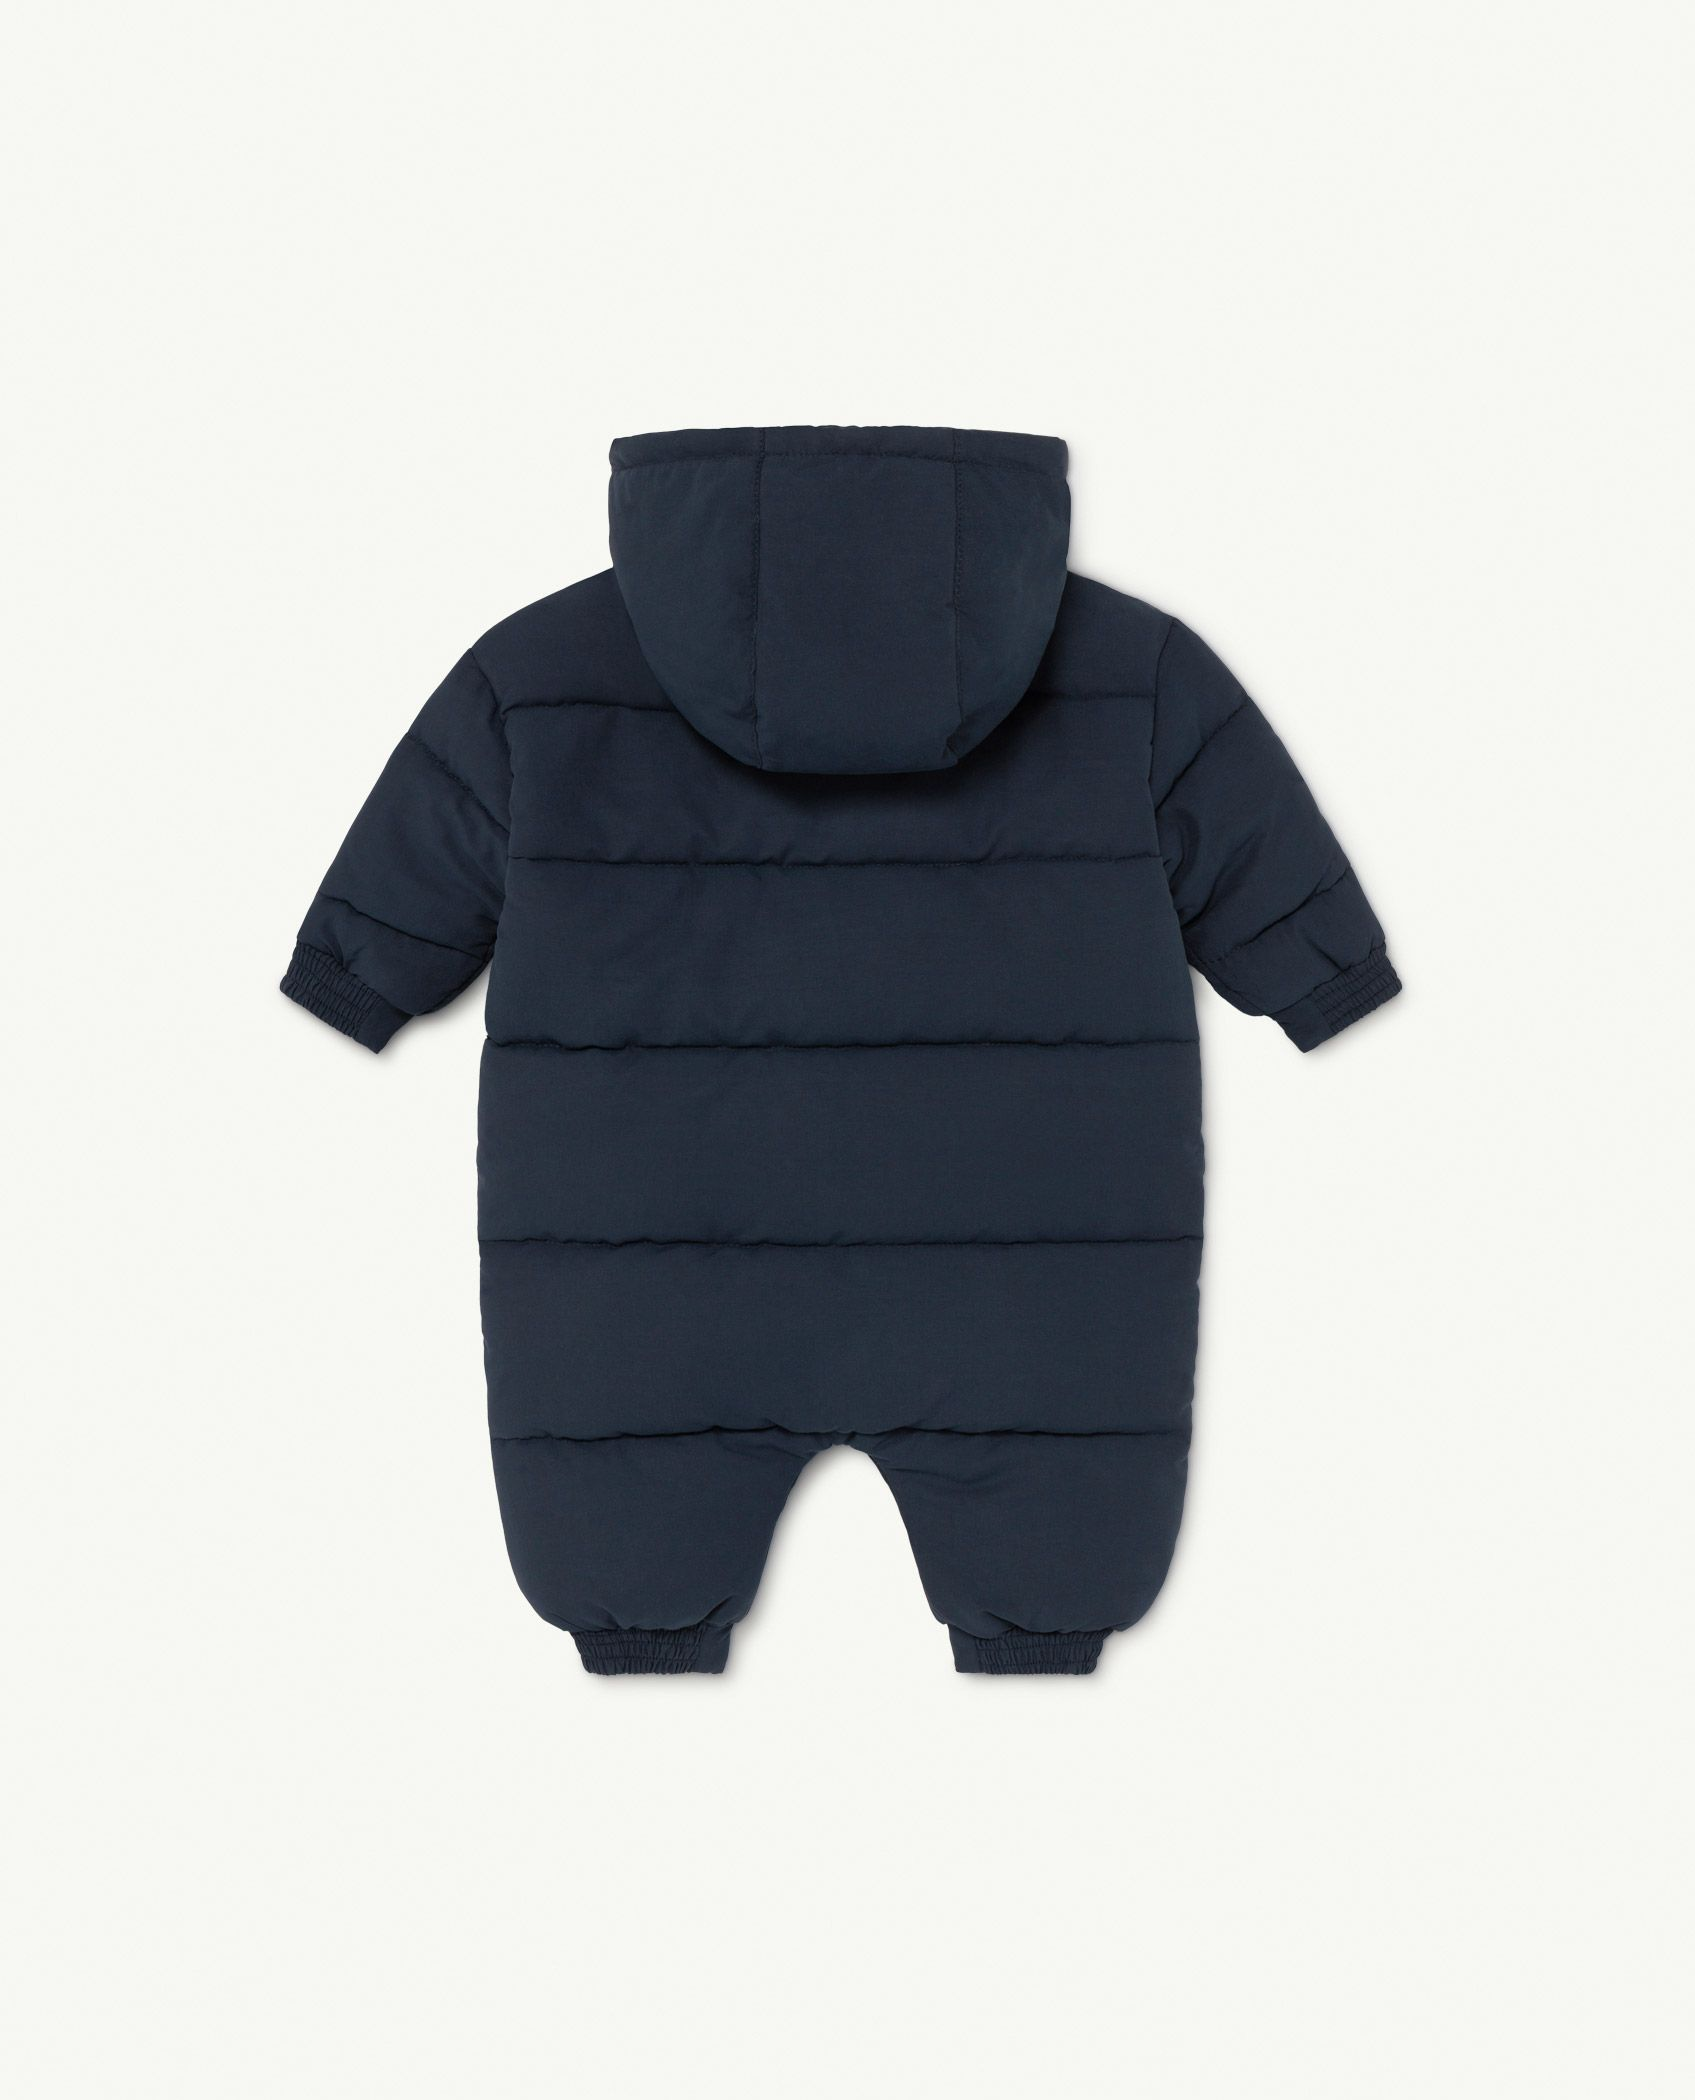 Navy The Animals Bumblebee Baby Jumpsuit img-2